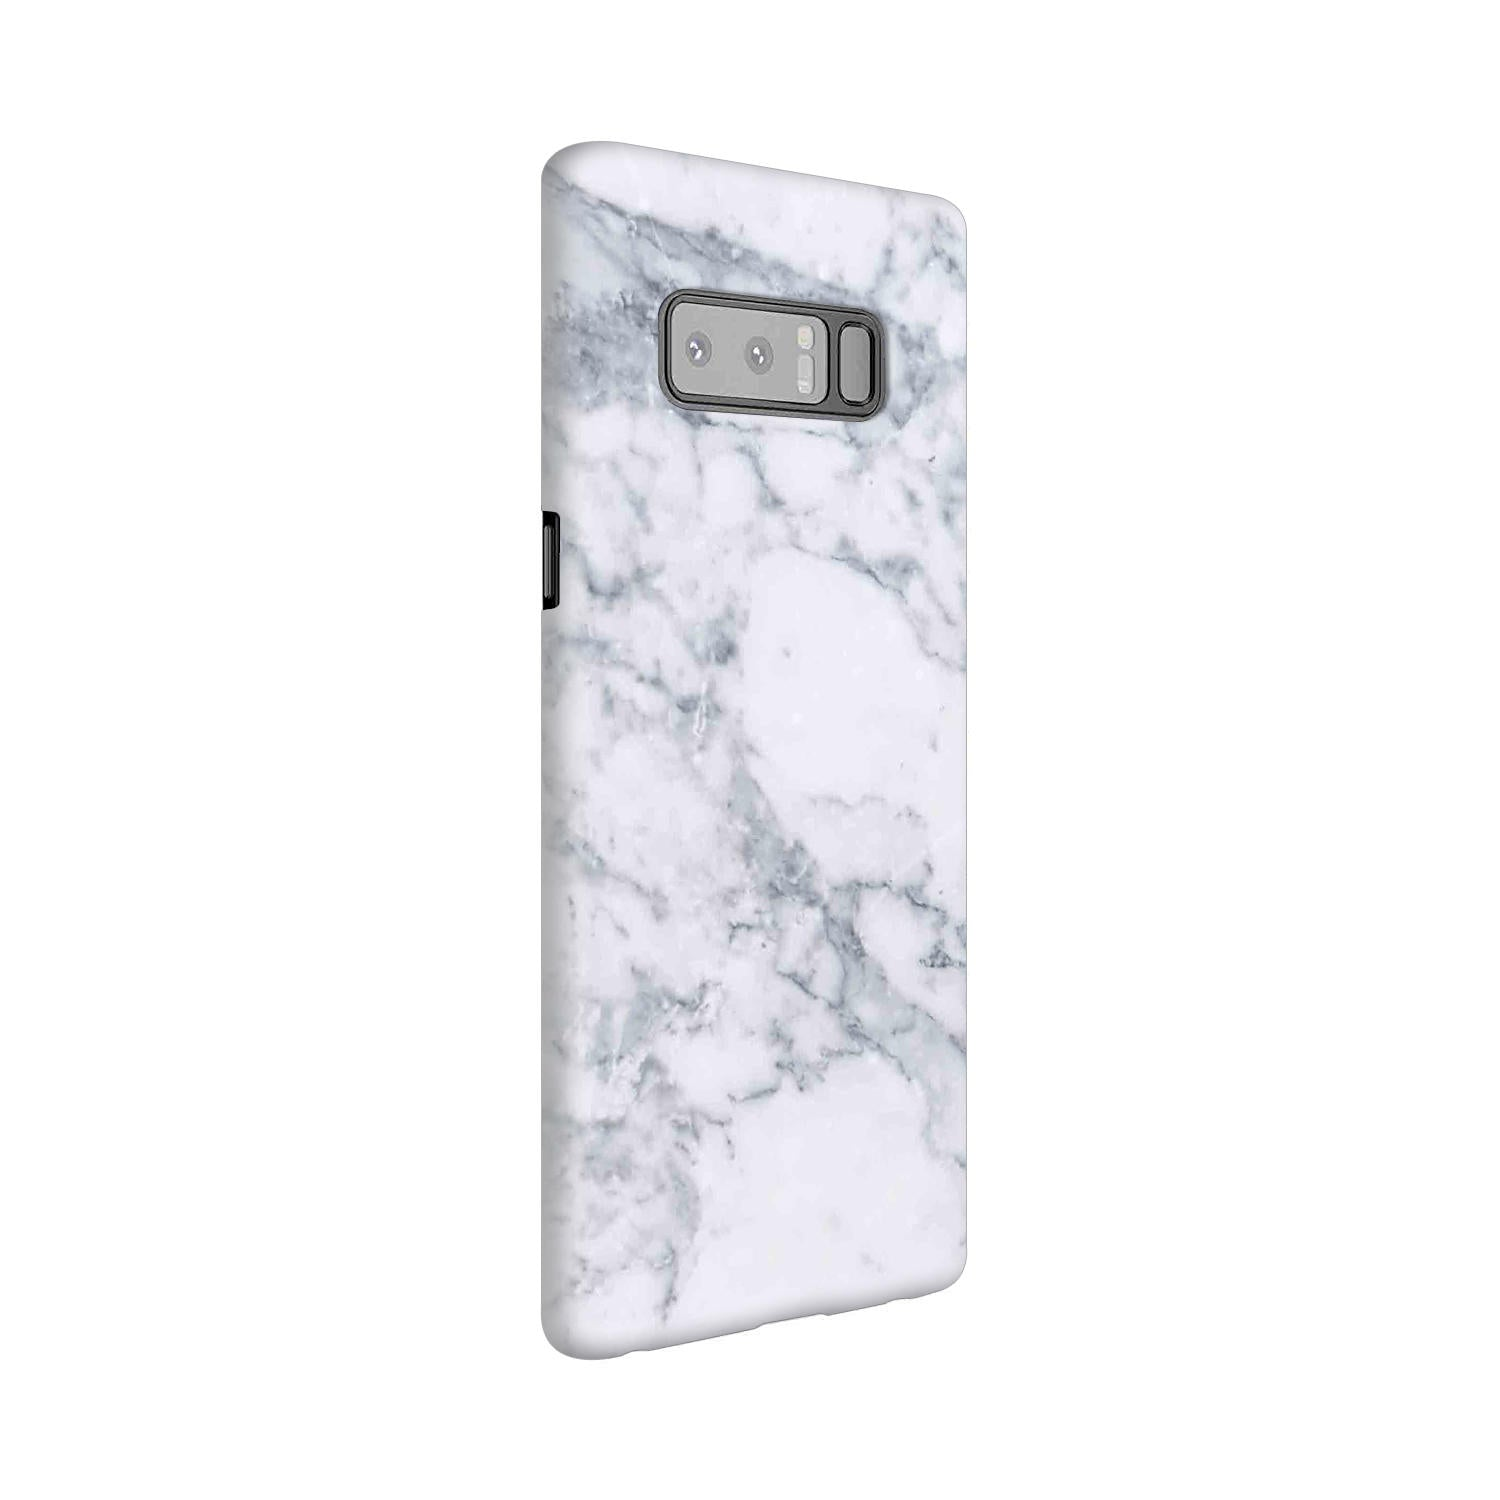 Chic White Marble Samsung Galaxy Note 8 Mobile Cover Case - MADANYU